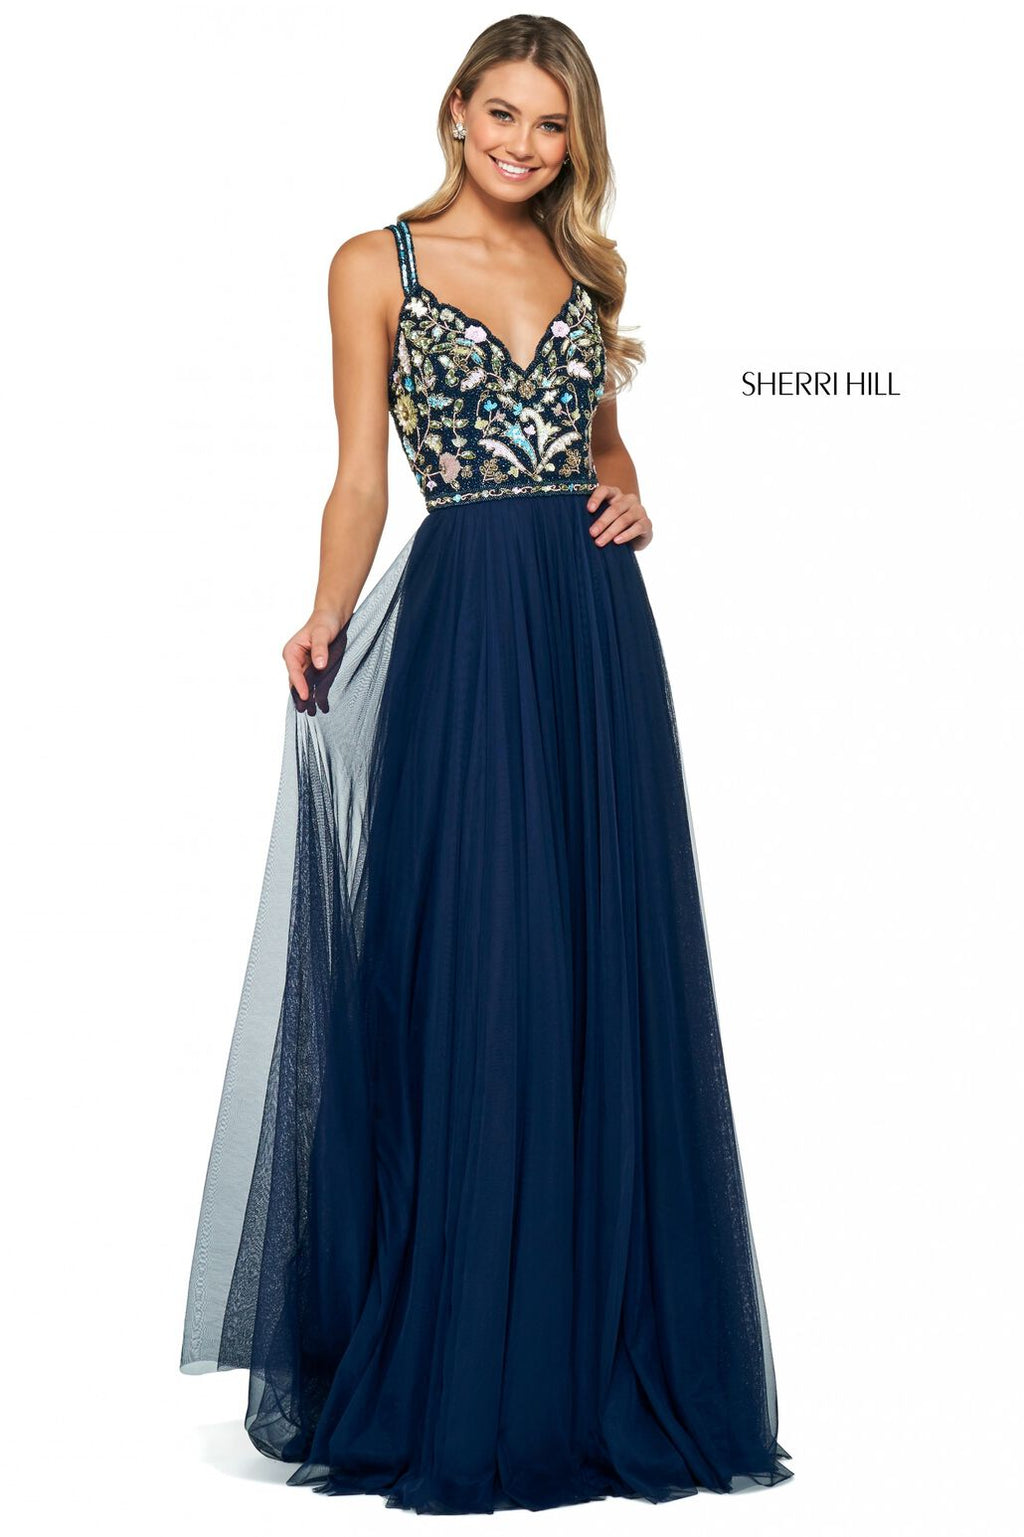 This Sherri Hill 53803 gown features a beaded bodice with a sweetheart neckline and a scrappy back with a chiffon skirt.